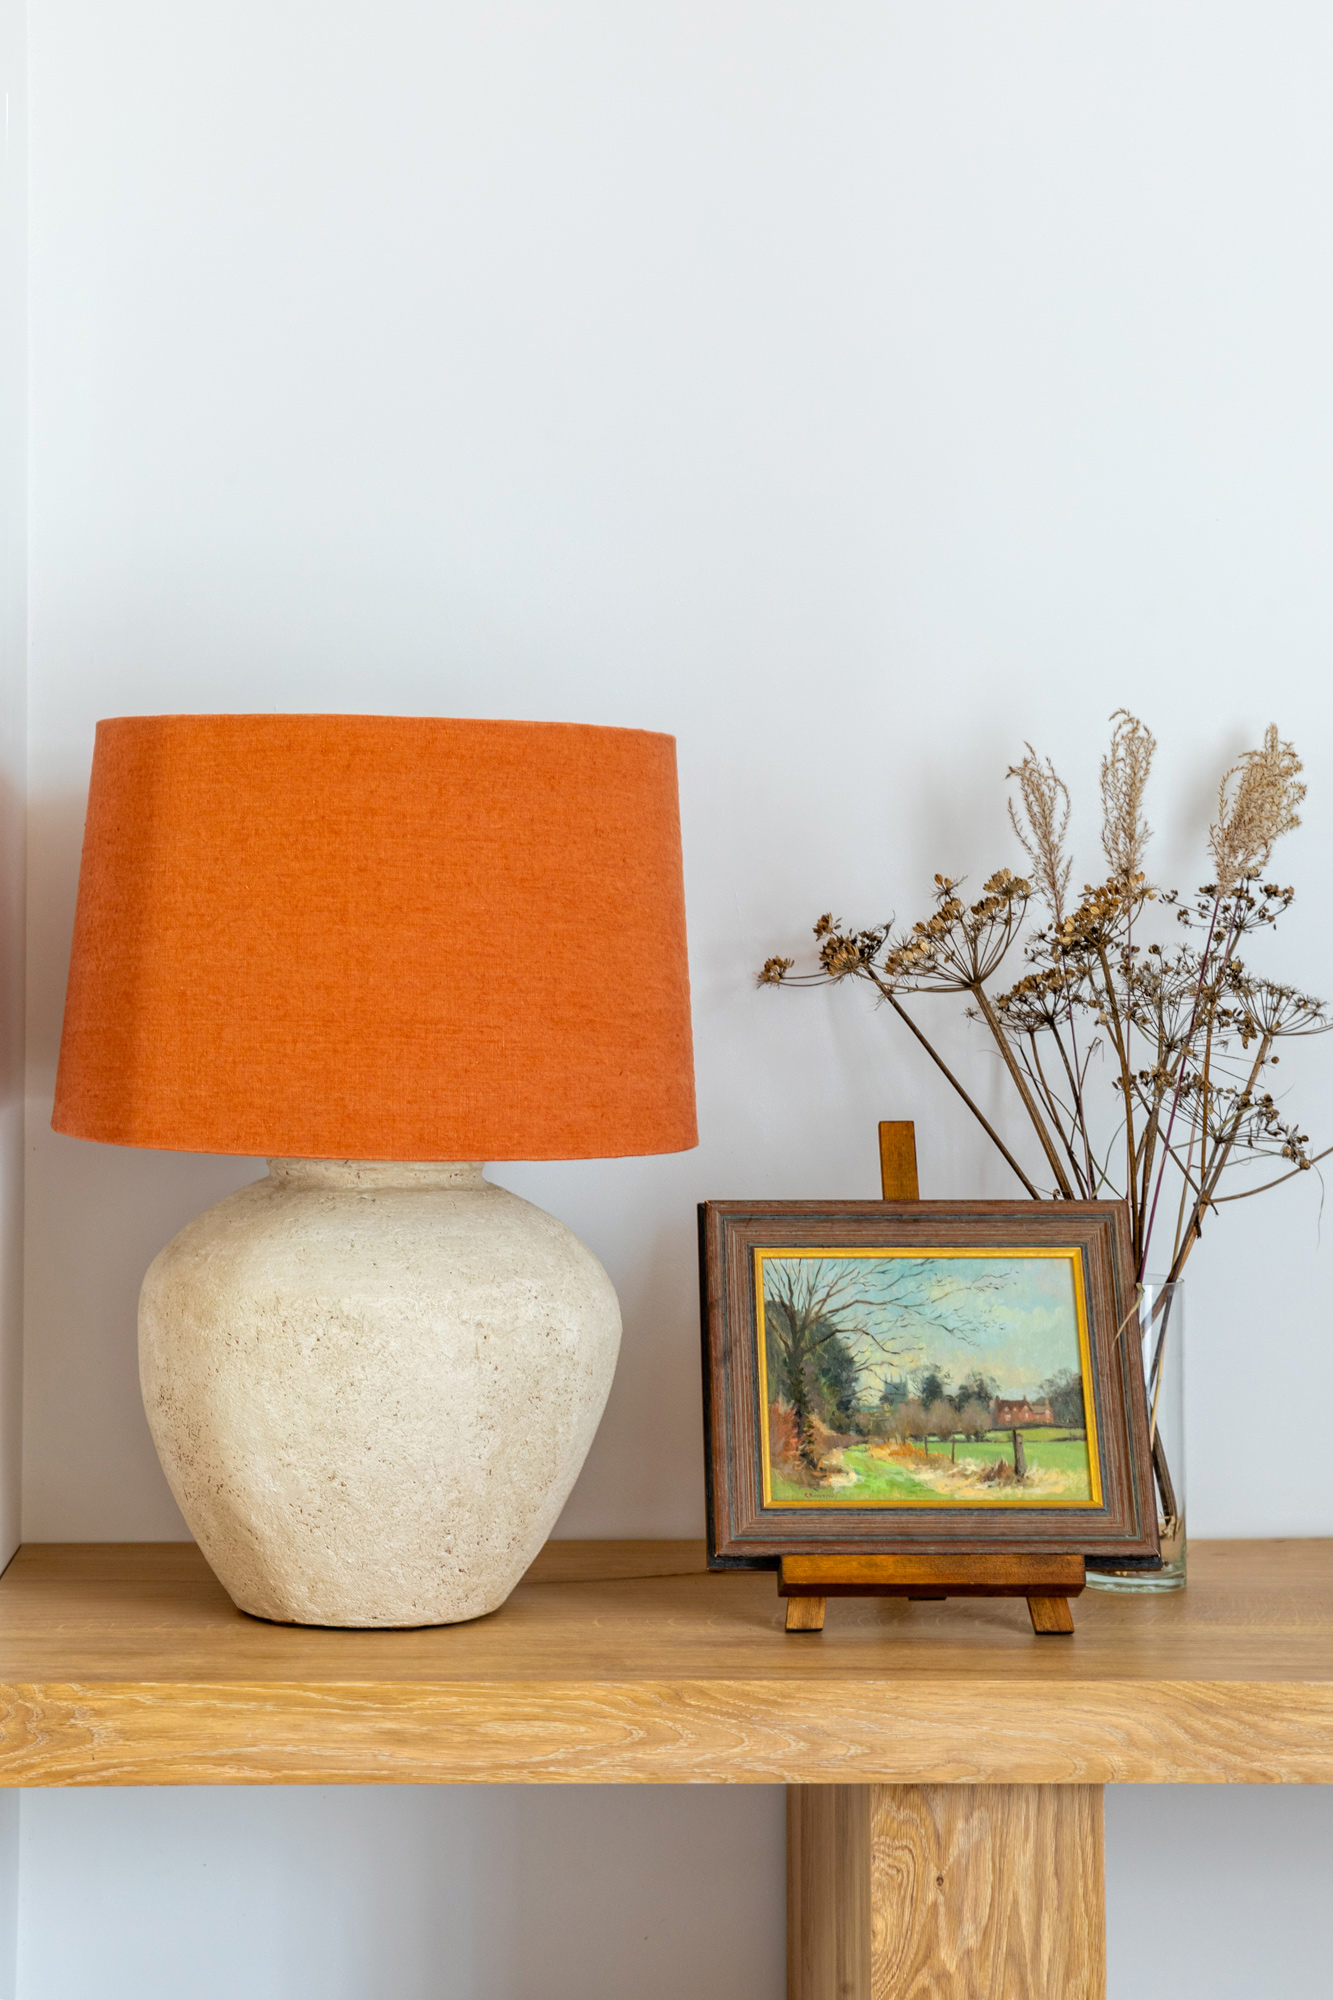 Interior design detail shot: plaster orange lamp and art